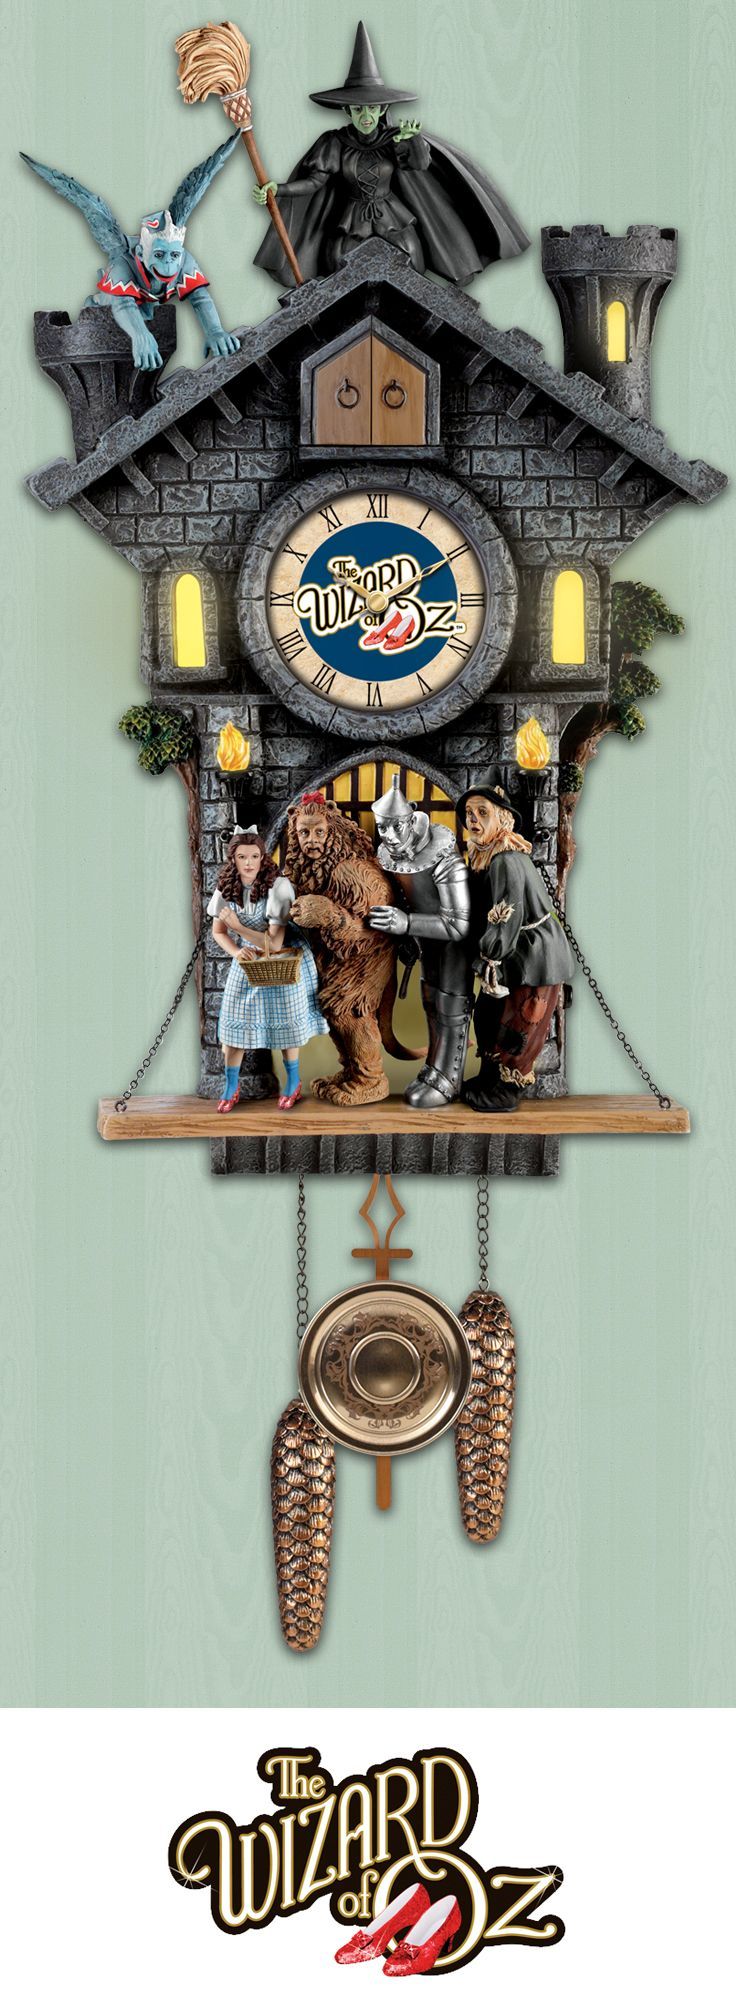 Pay tribute to a film classic with this first-of-its-kind Wizard of Oz Cuckoo Clock.